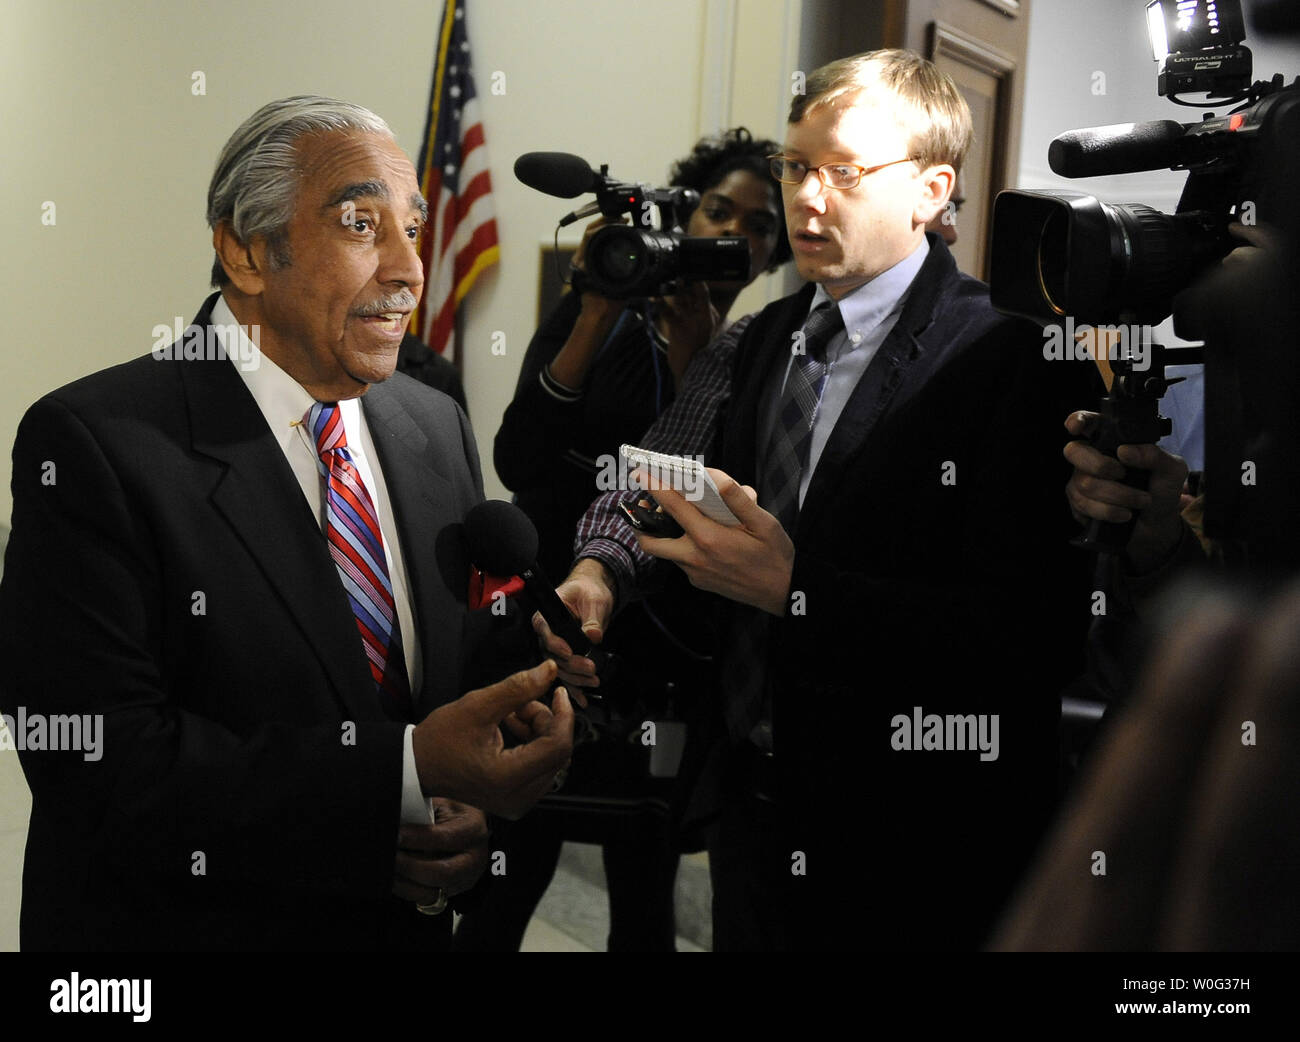 Rep. Charlie Rangel, D-NY, talks to reporters has he waits for an elevator near his office on Capitol Hill in Washington on November 15, 2010. Rangel walked out of a House Committee on Standards of Official Conduct hearing earlier today. He is facing financial misconduct charges.    UPI/Roger L. Wollenberg Stock Photo